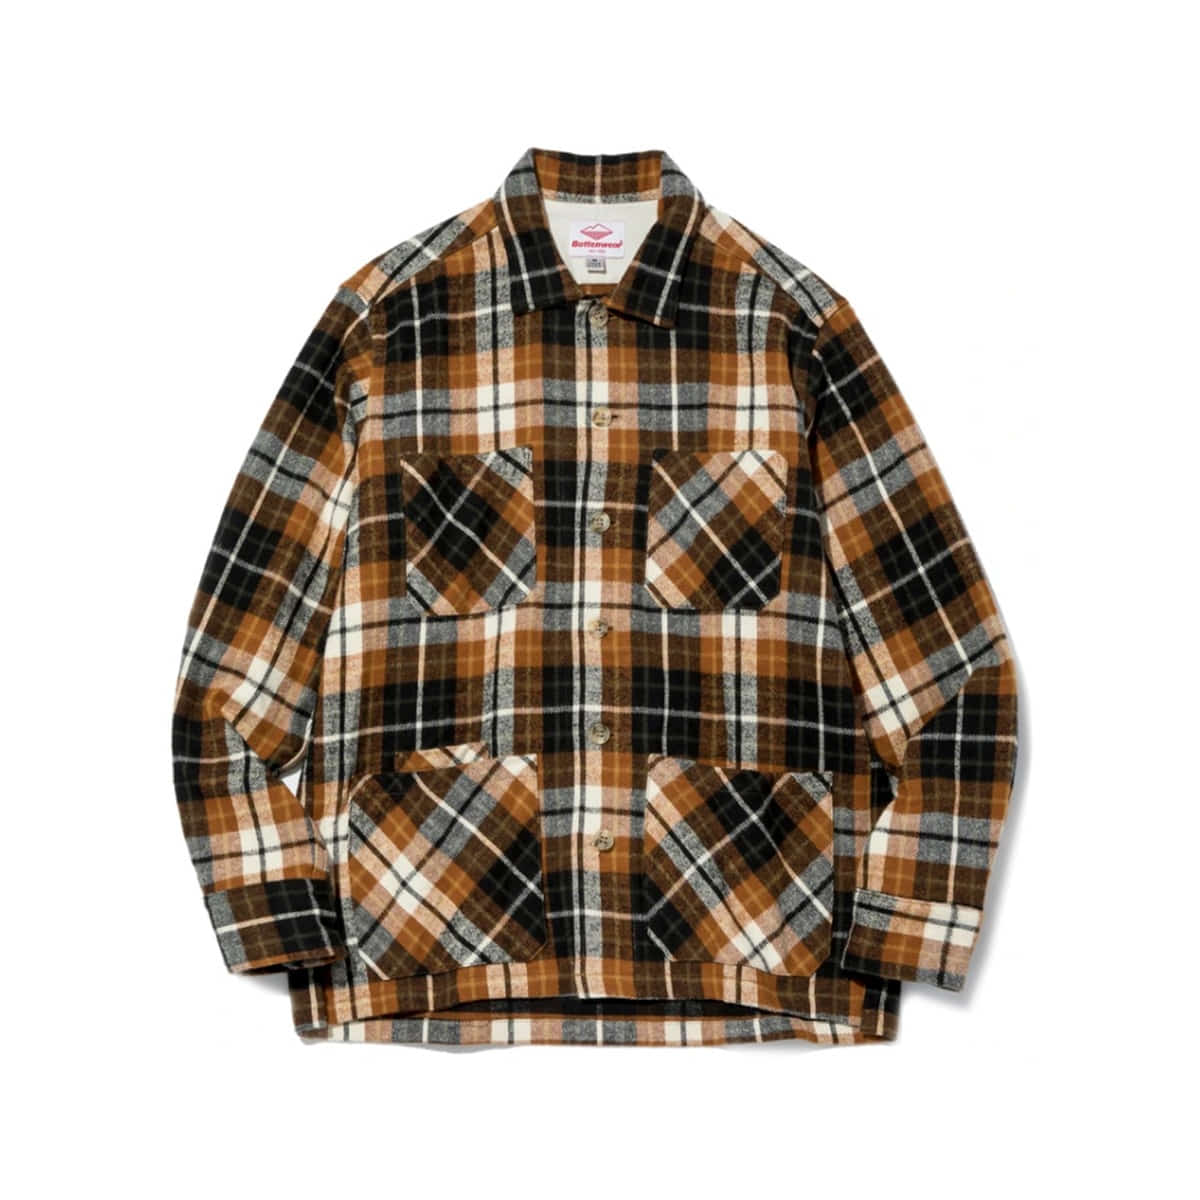 [BATTENWEAR] FIVE POCKET CANYON SHIRT 'CHESTNUT PLAID'